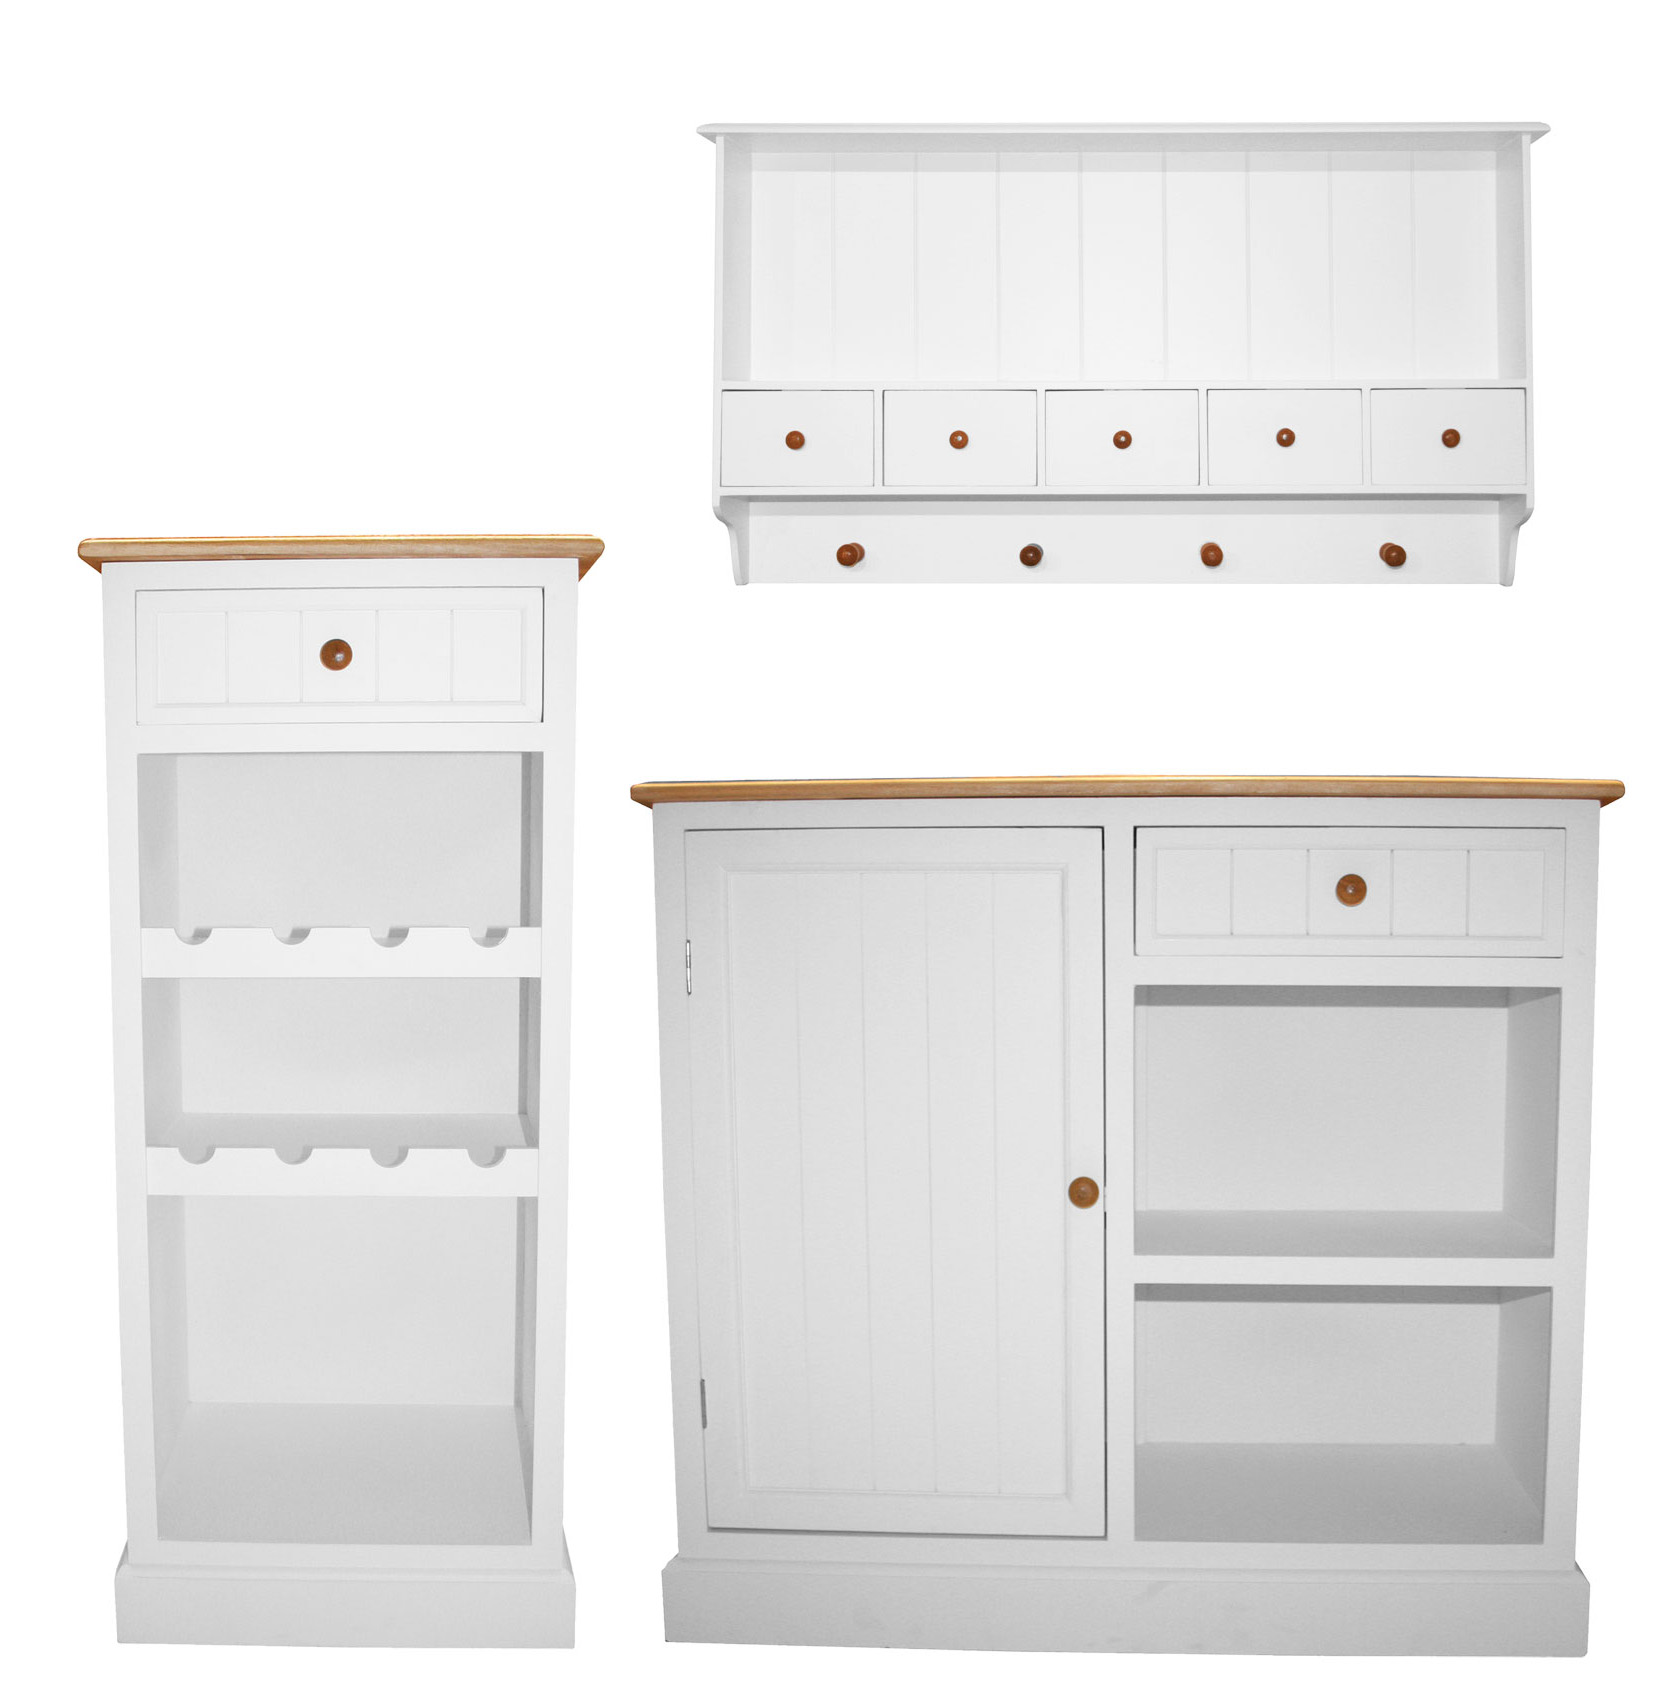 Charles bentley white traditional country kitchen wall for Kitchen display wall